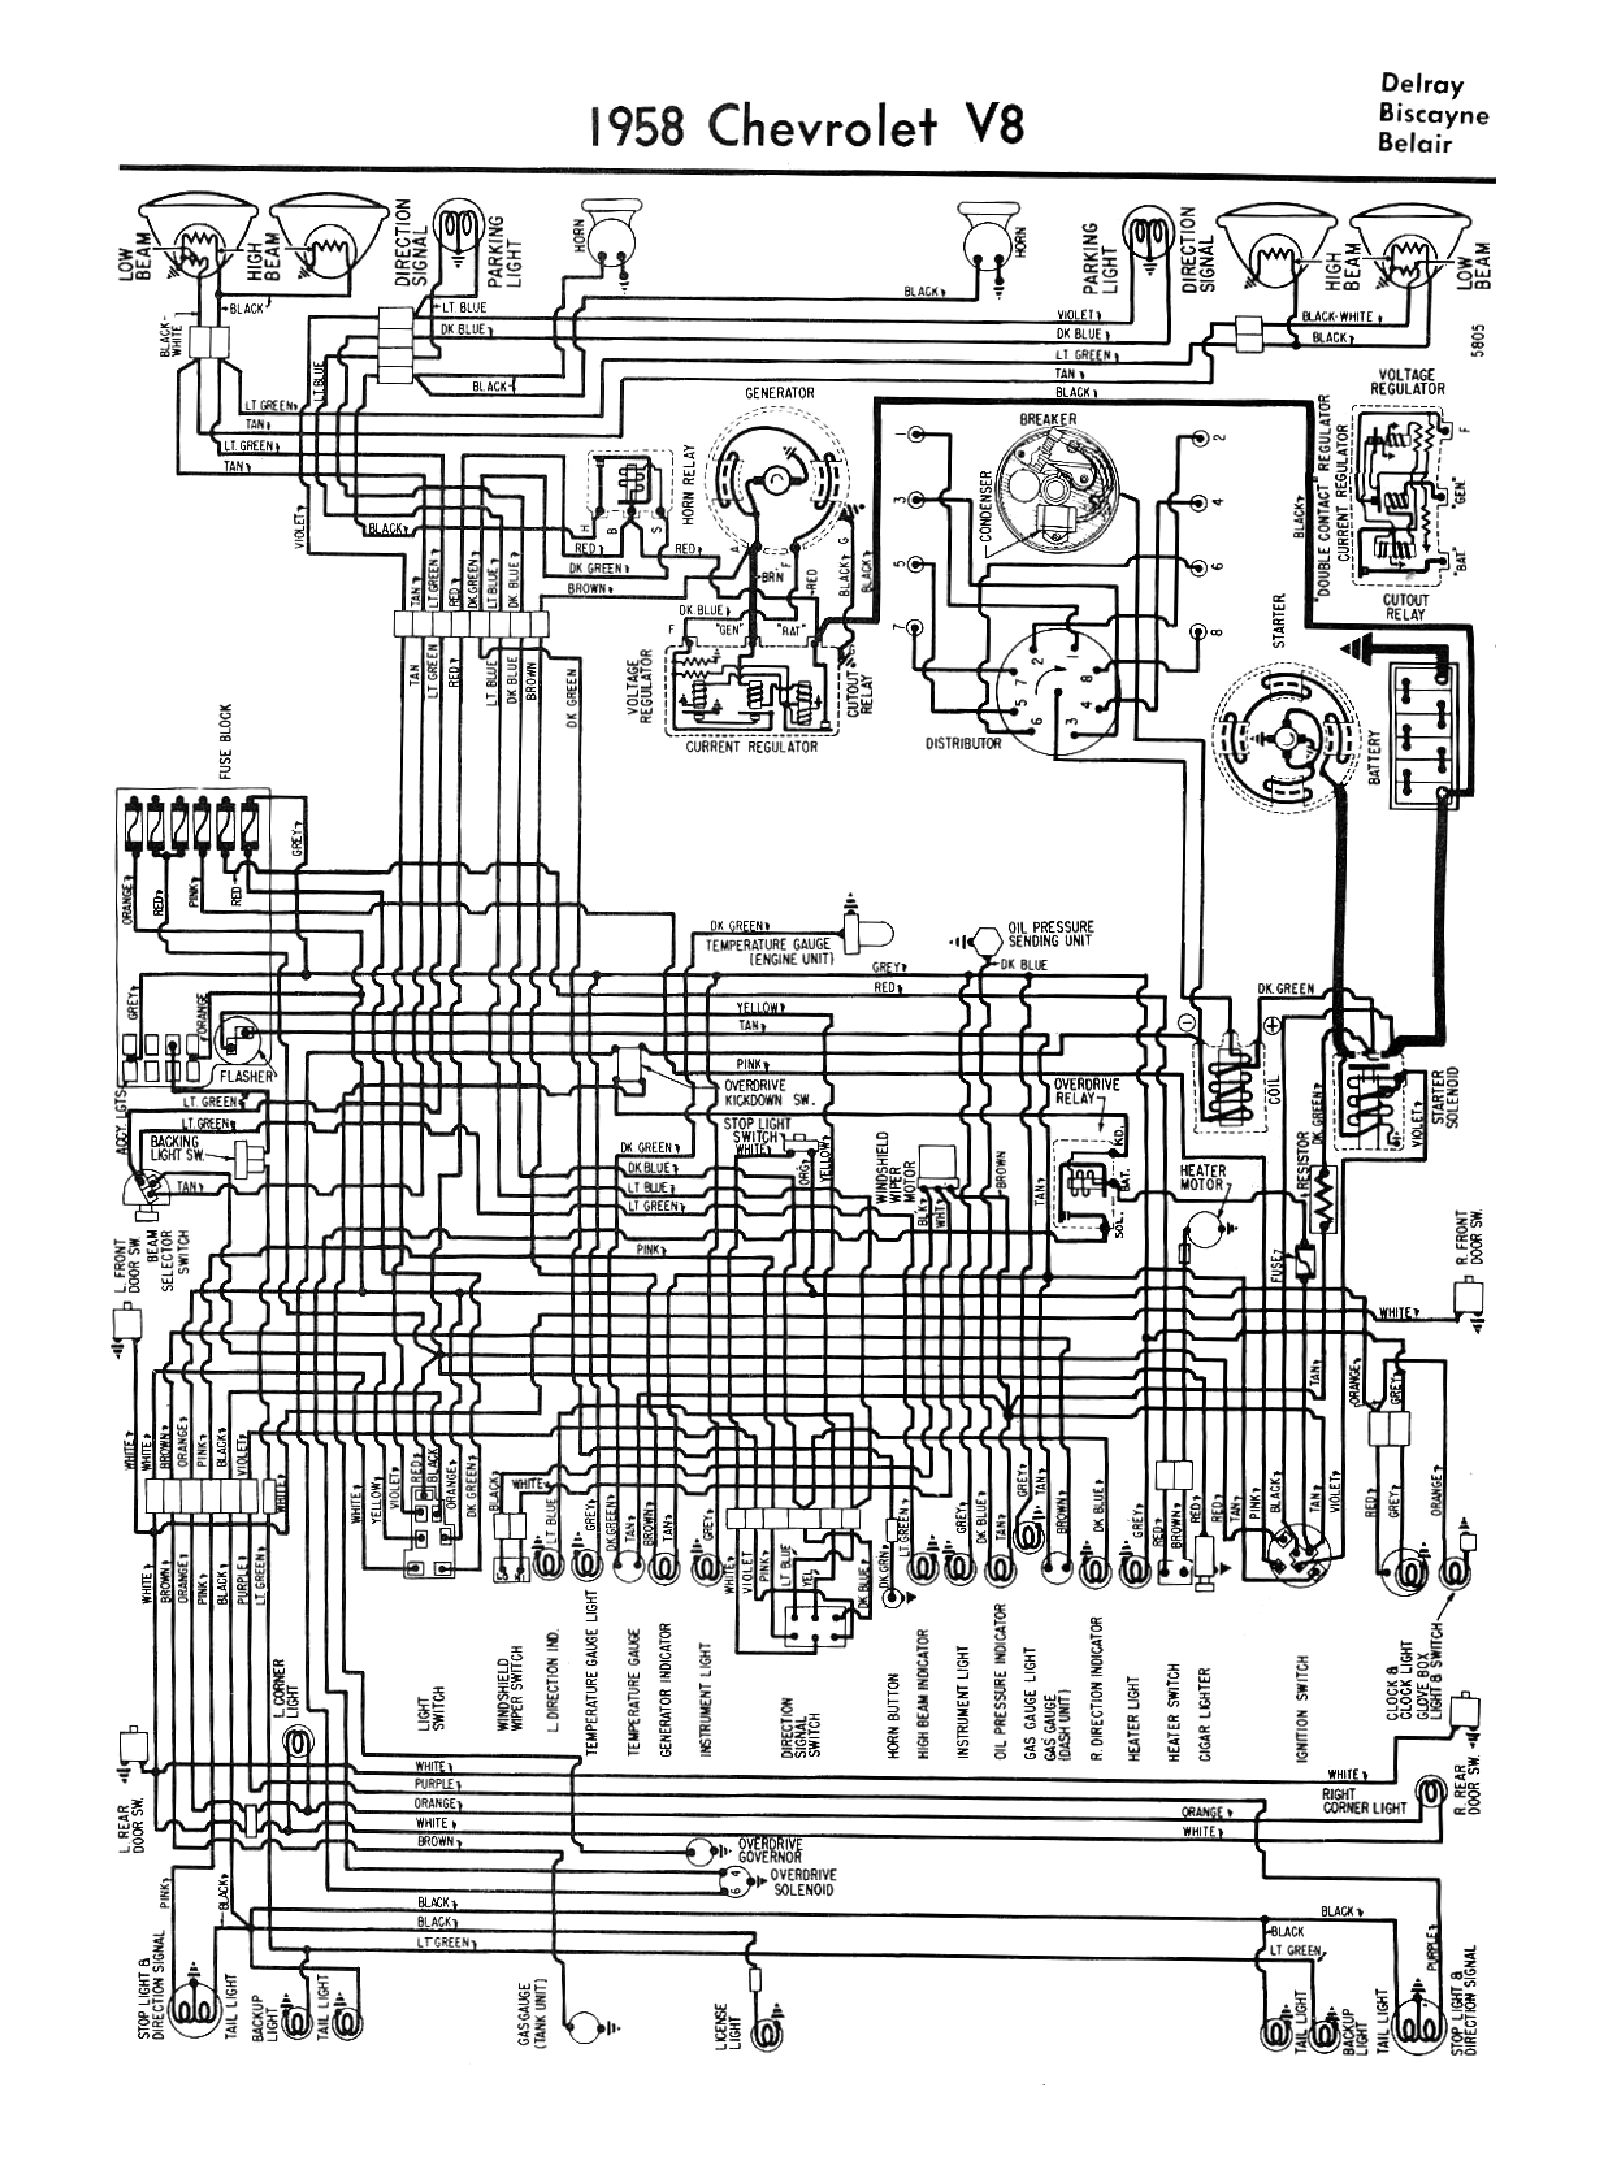 Snap 1954 Chevrolet Wiring Diagram Dash Windshield Wiper Circuit For The 1960 Passenger Car Headlight Switch Test Chevytalk Free Restoration And Repair Help Your